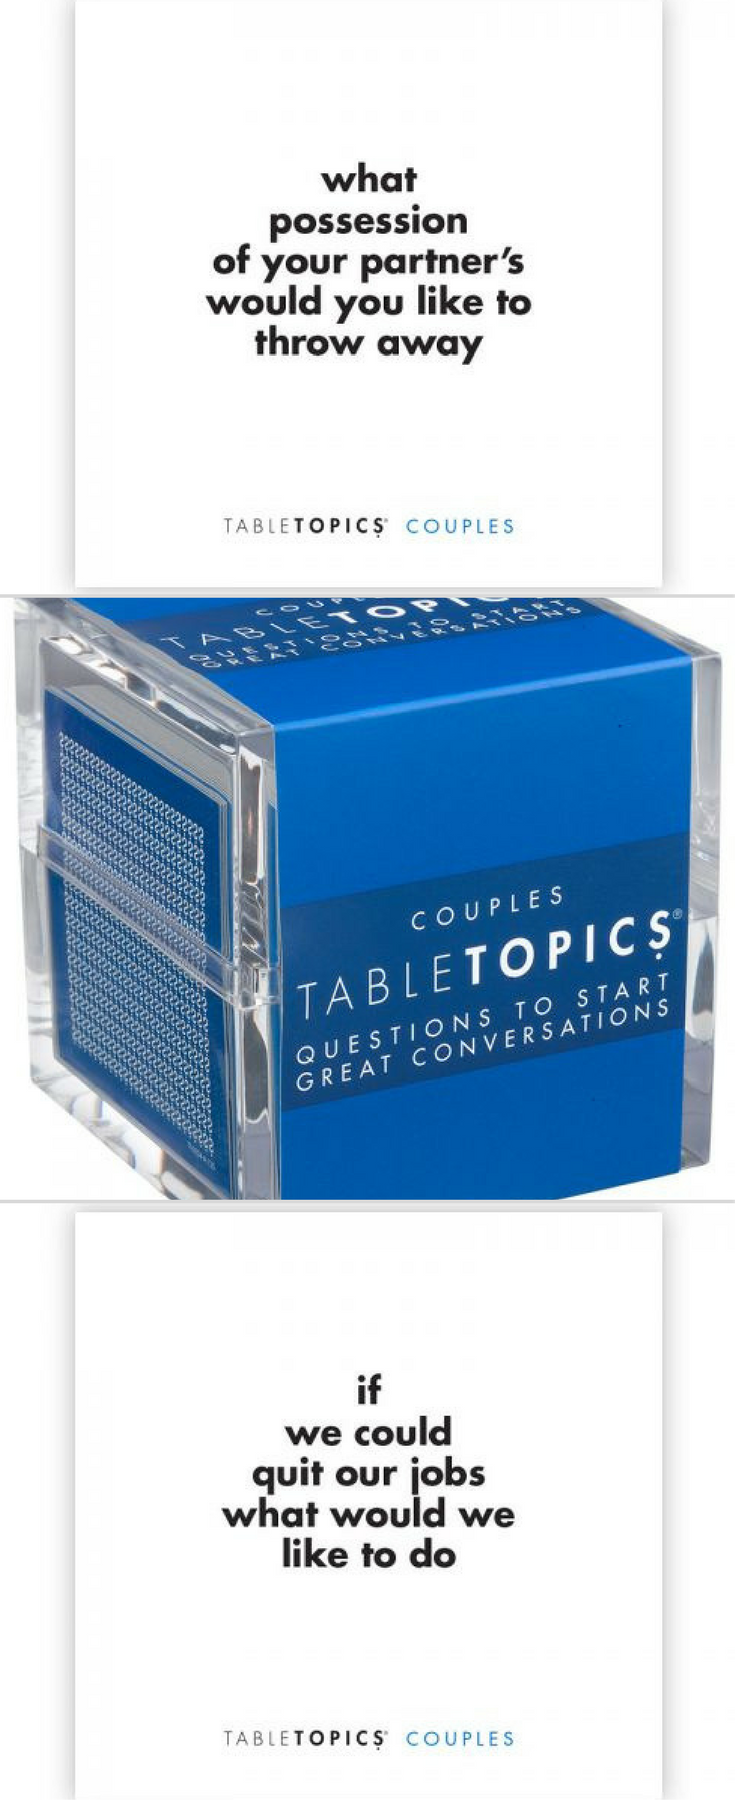 Table topics couples edition